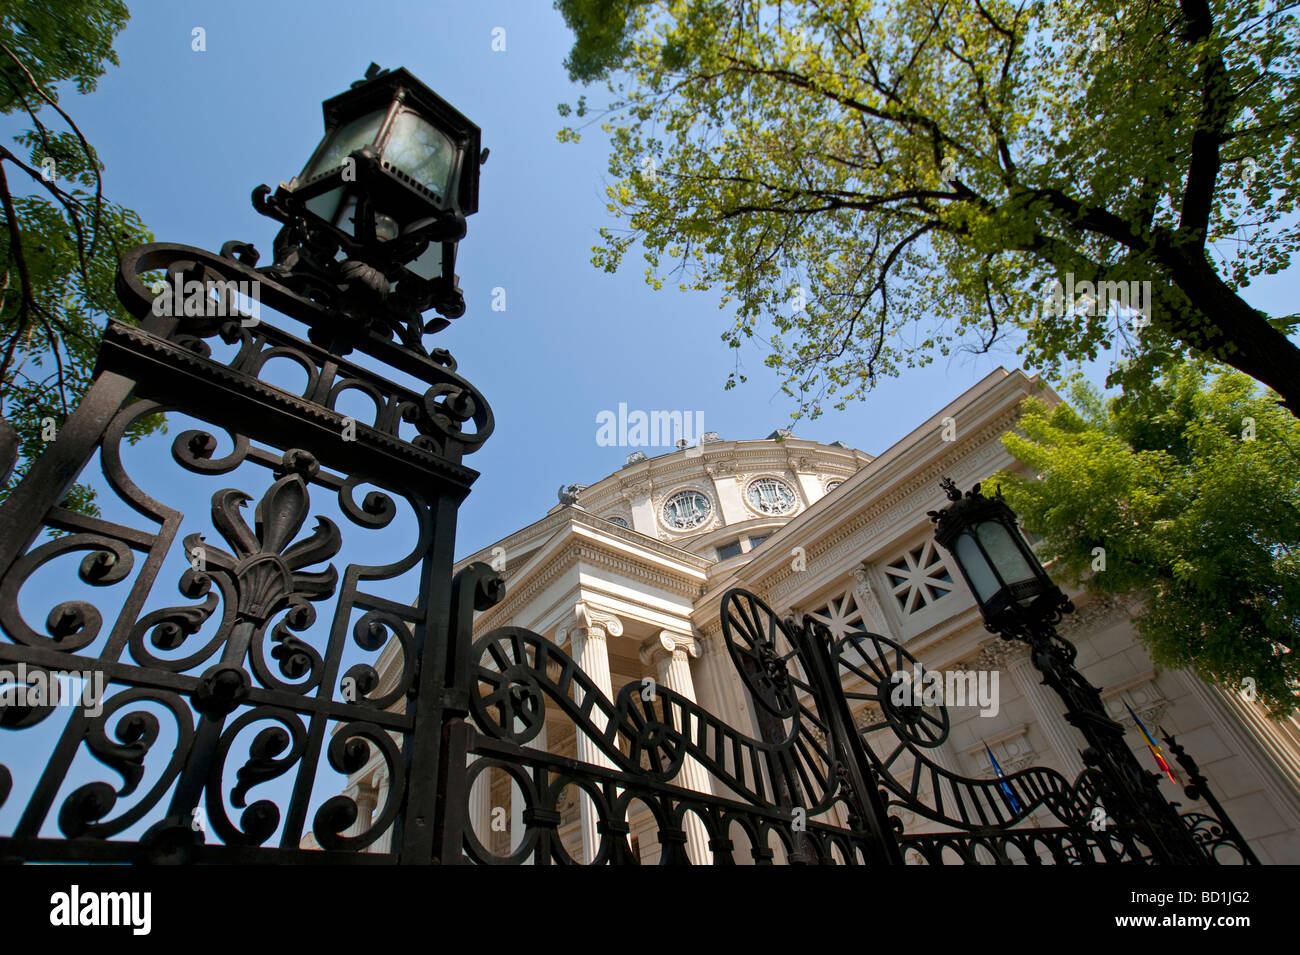 Bucharest's Romanian Athenaeum Concert Hall in neoclassical style - Stock Image